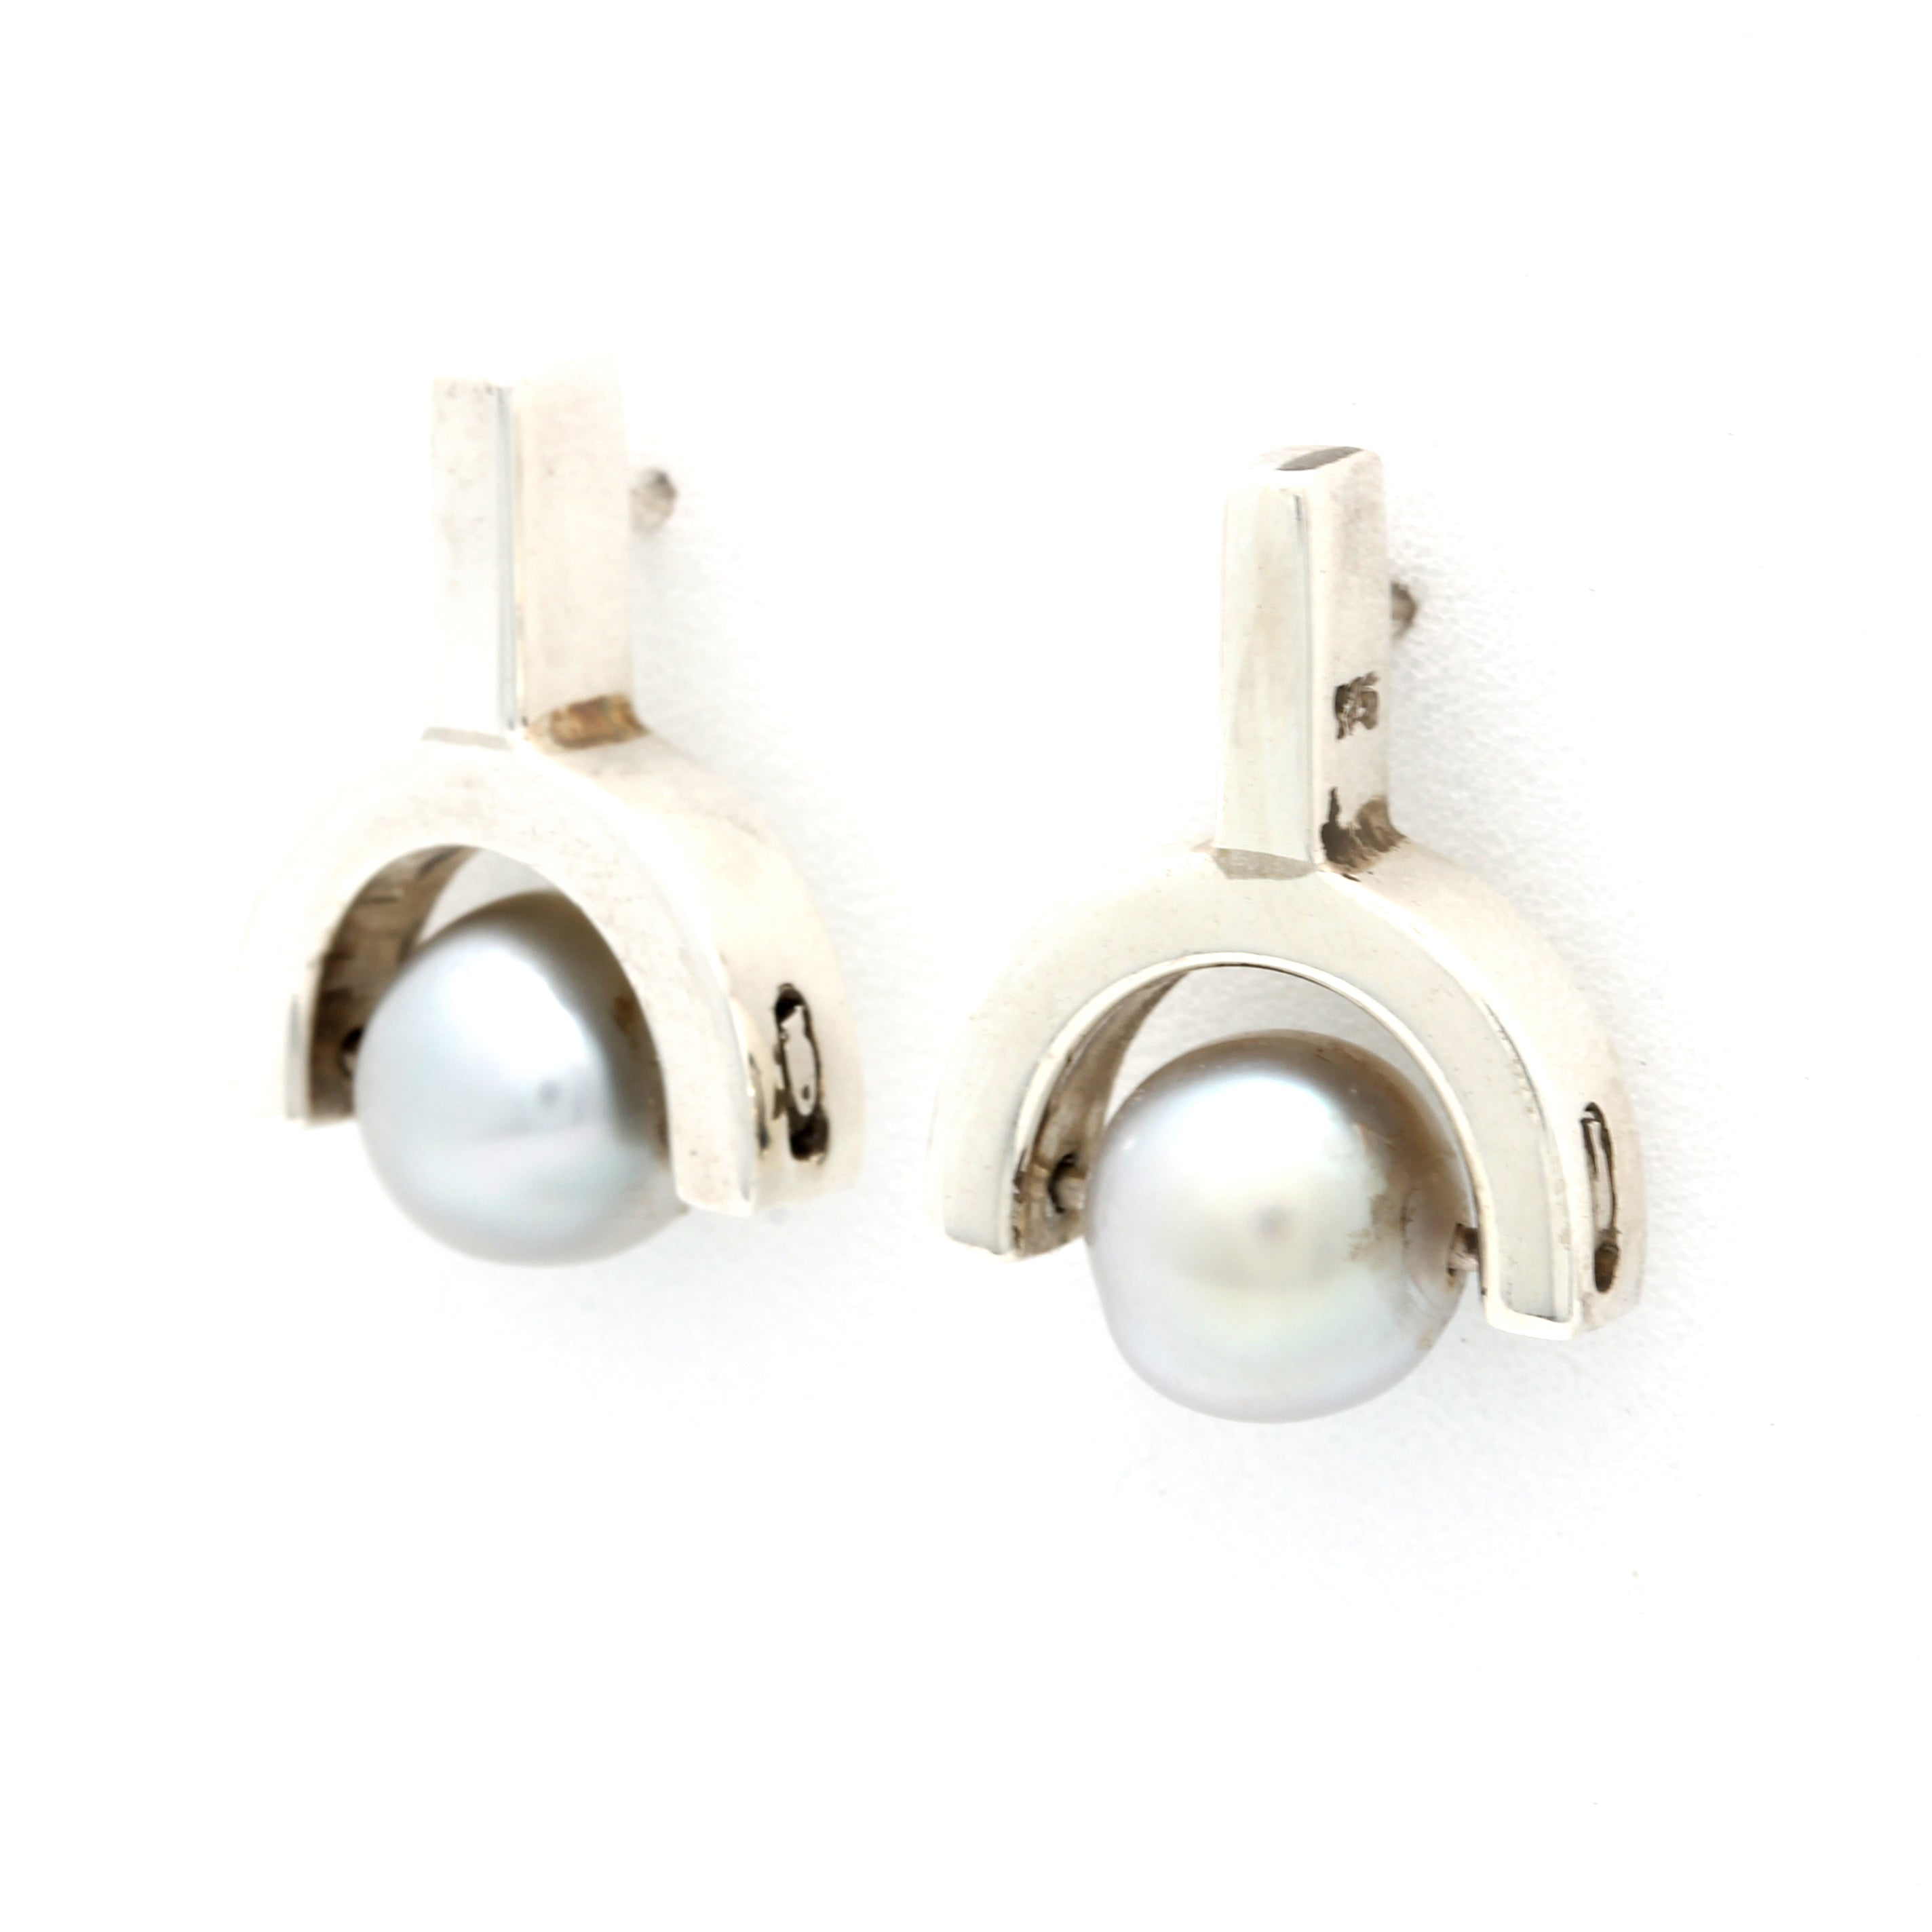 Silver Earrings with Cortez Pearls by Fabra